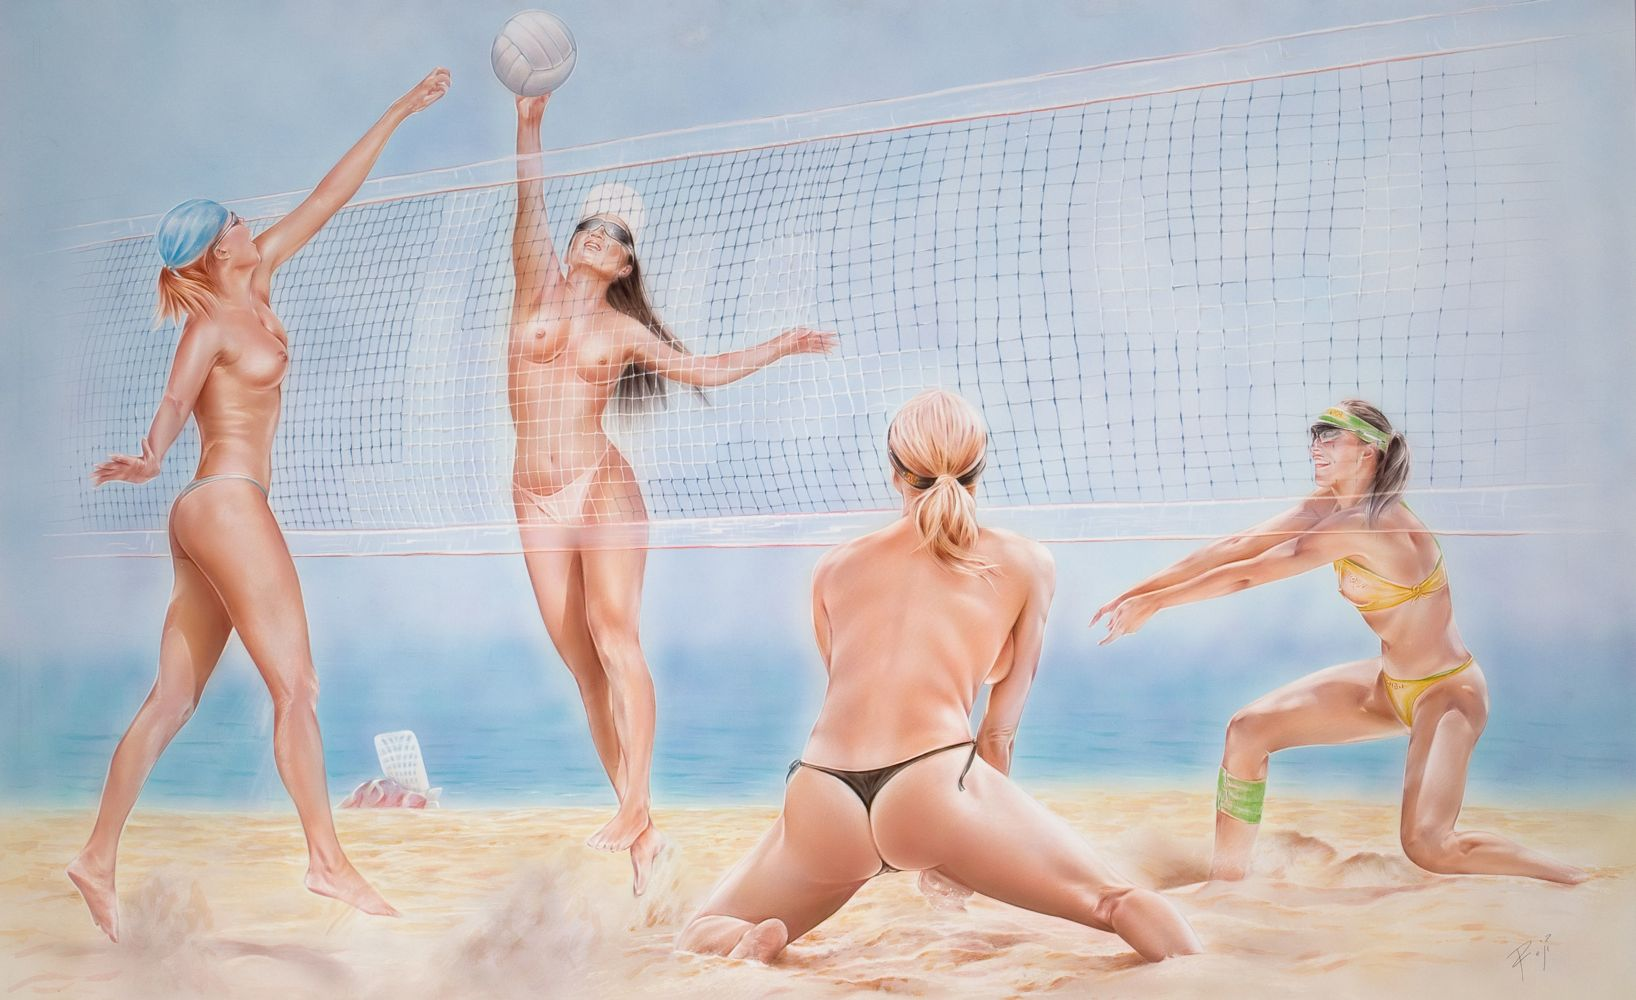 Players beach nude volleyball